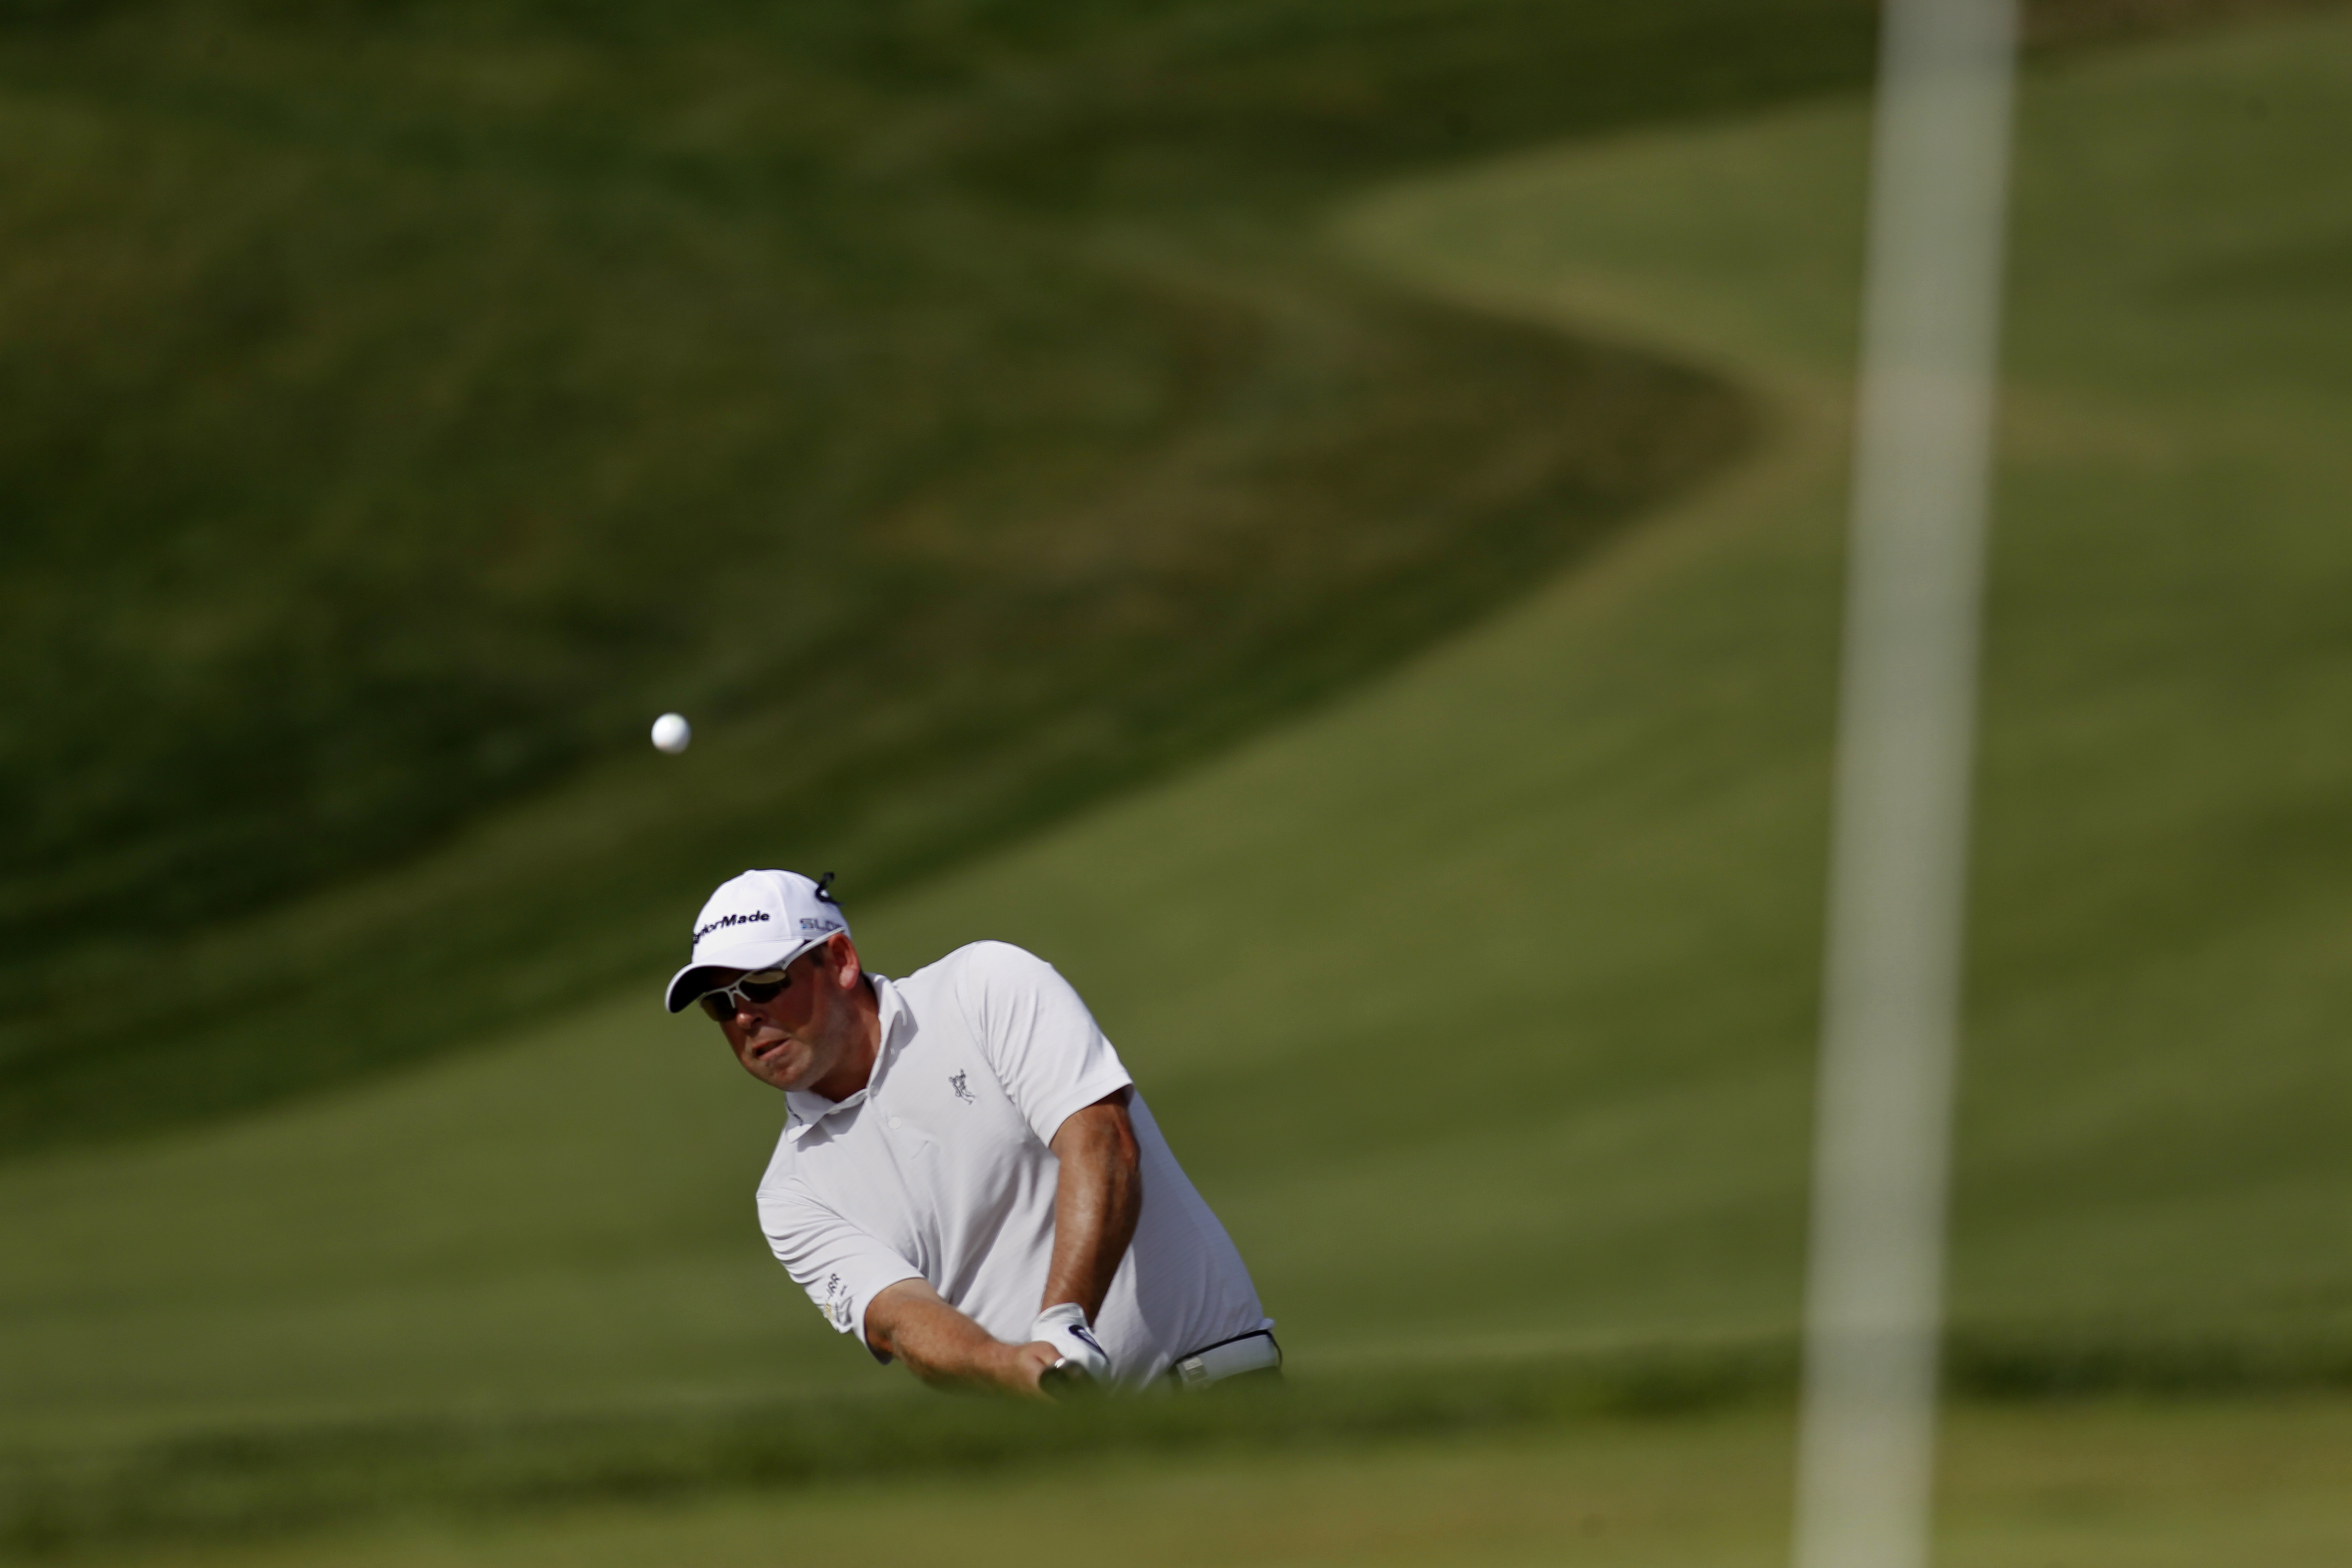 South Africa's Justin Walters chips the ball onto the seventh hole during the third round of the Portugal Master golf tournament at the Victoria golf course in Vilamoura, southern Portugal, Saturday, Oct. 12, 2013. (AP Photo/Francisco Seco)